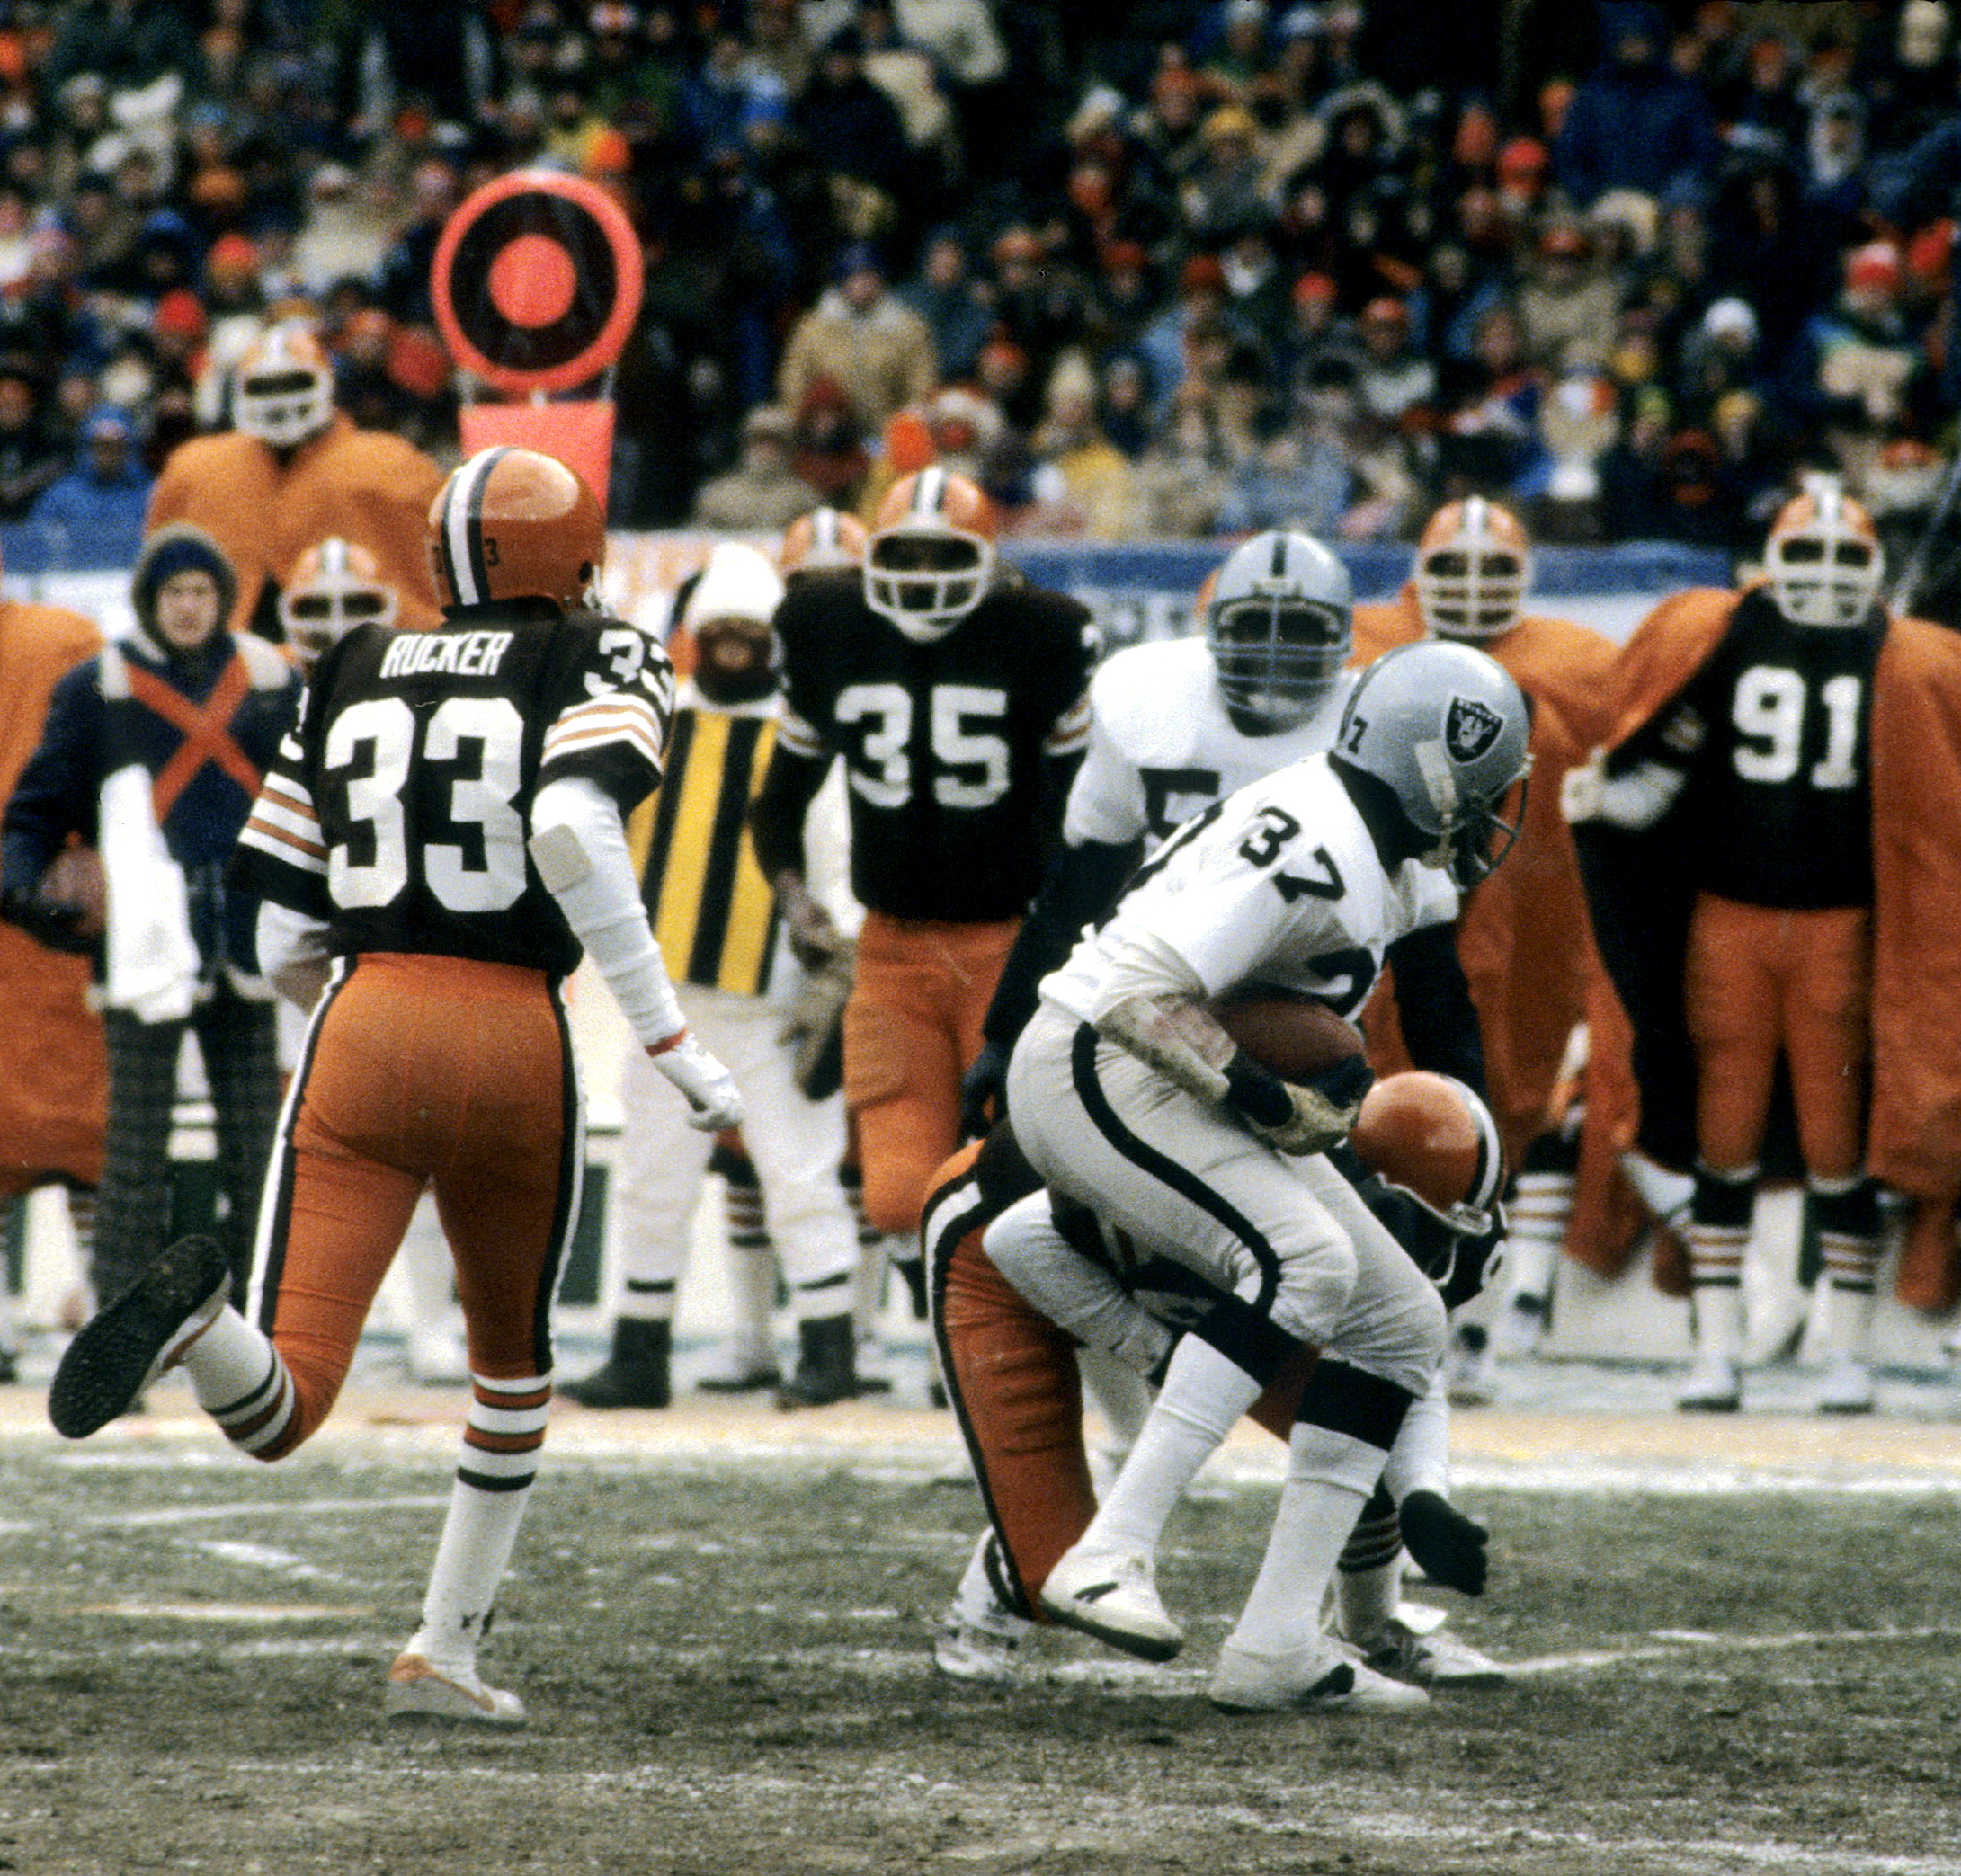 1980 Raiders and Browns